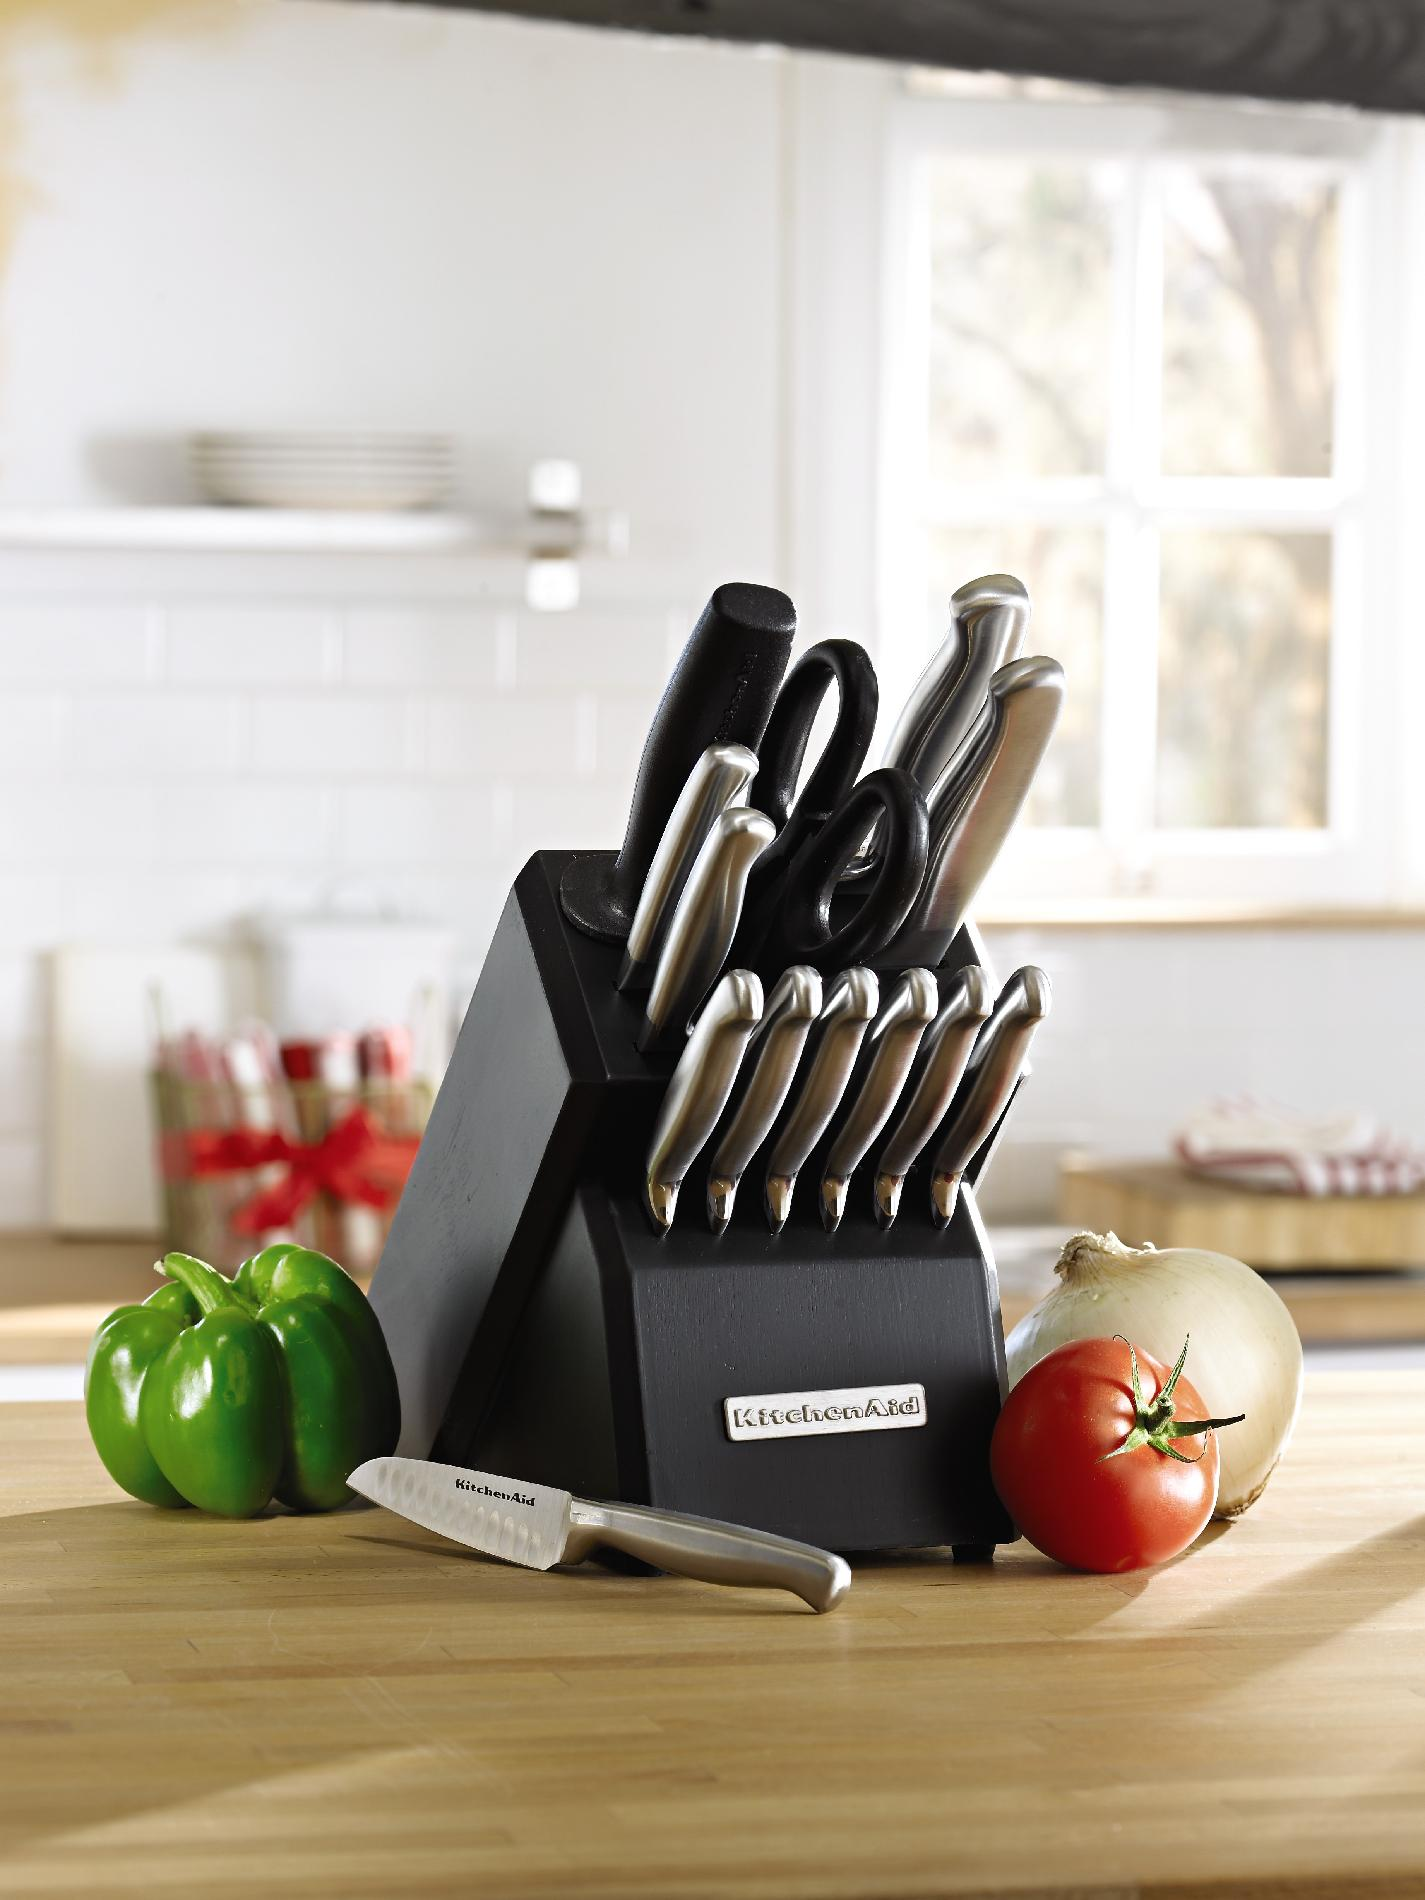 KitchenAid 14-Piece Stainless Steel Block Knife Set